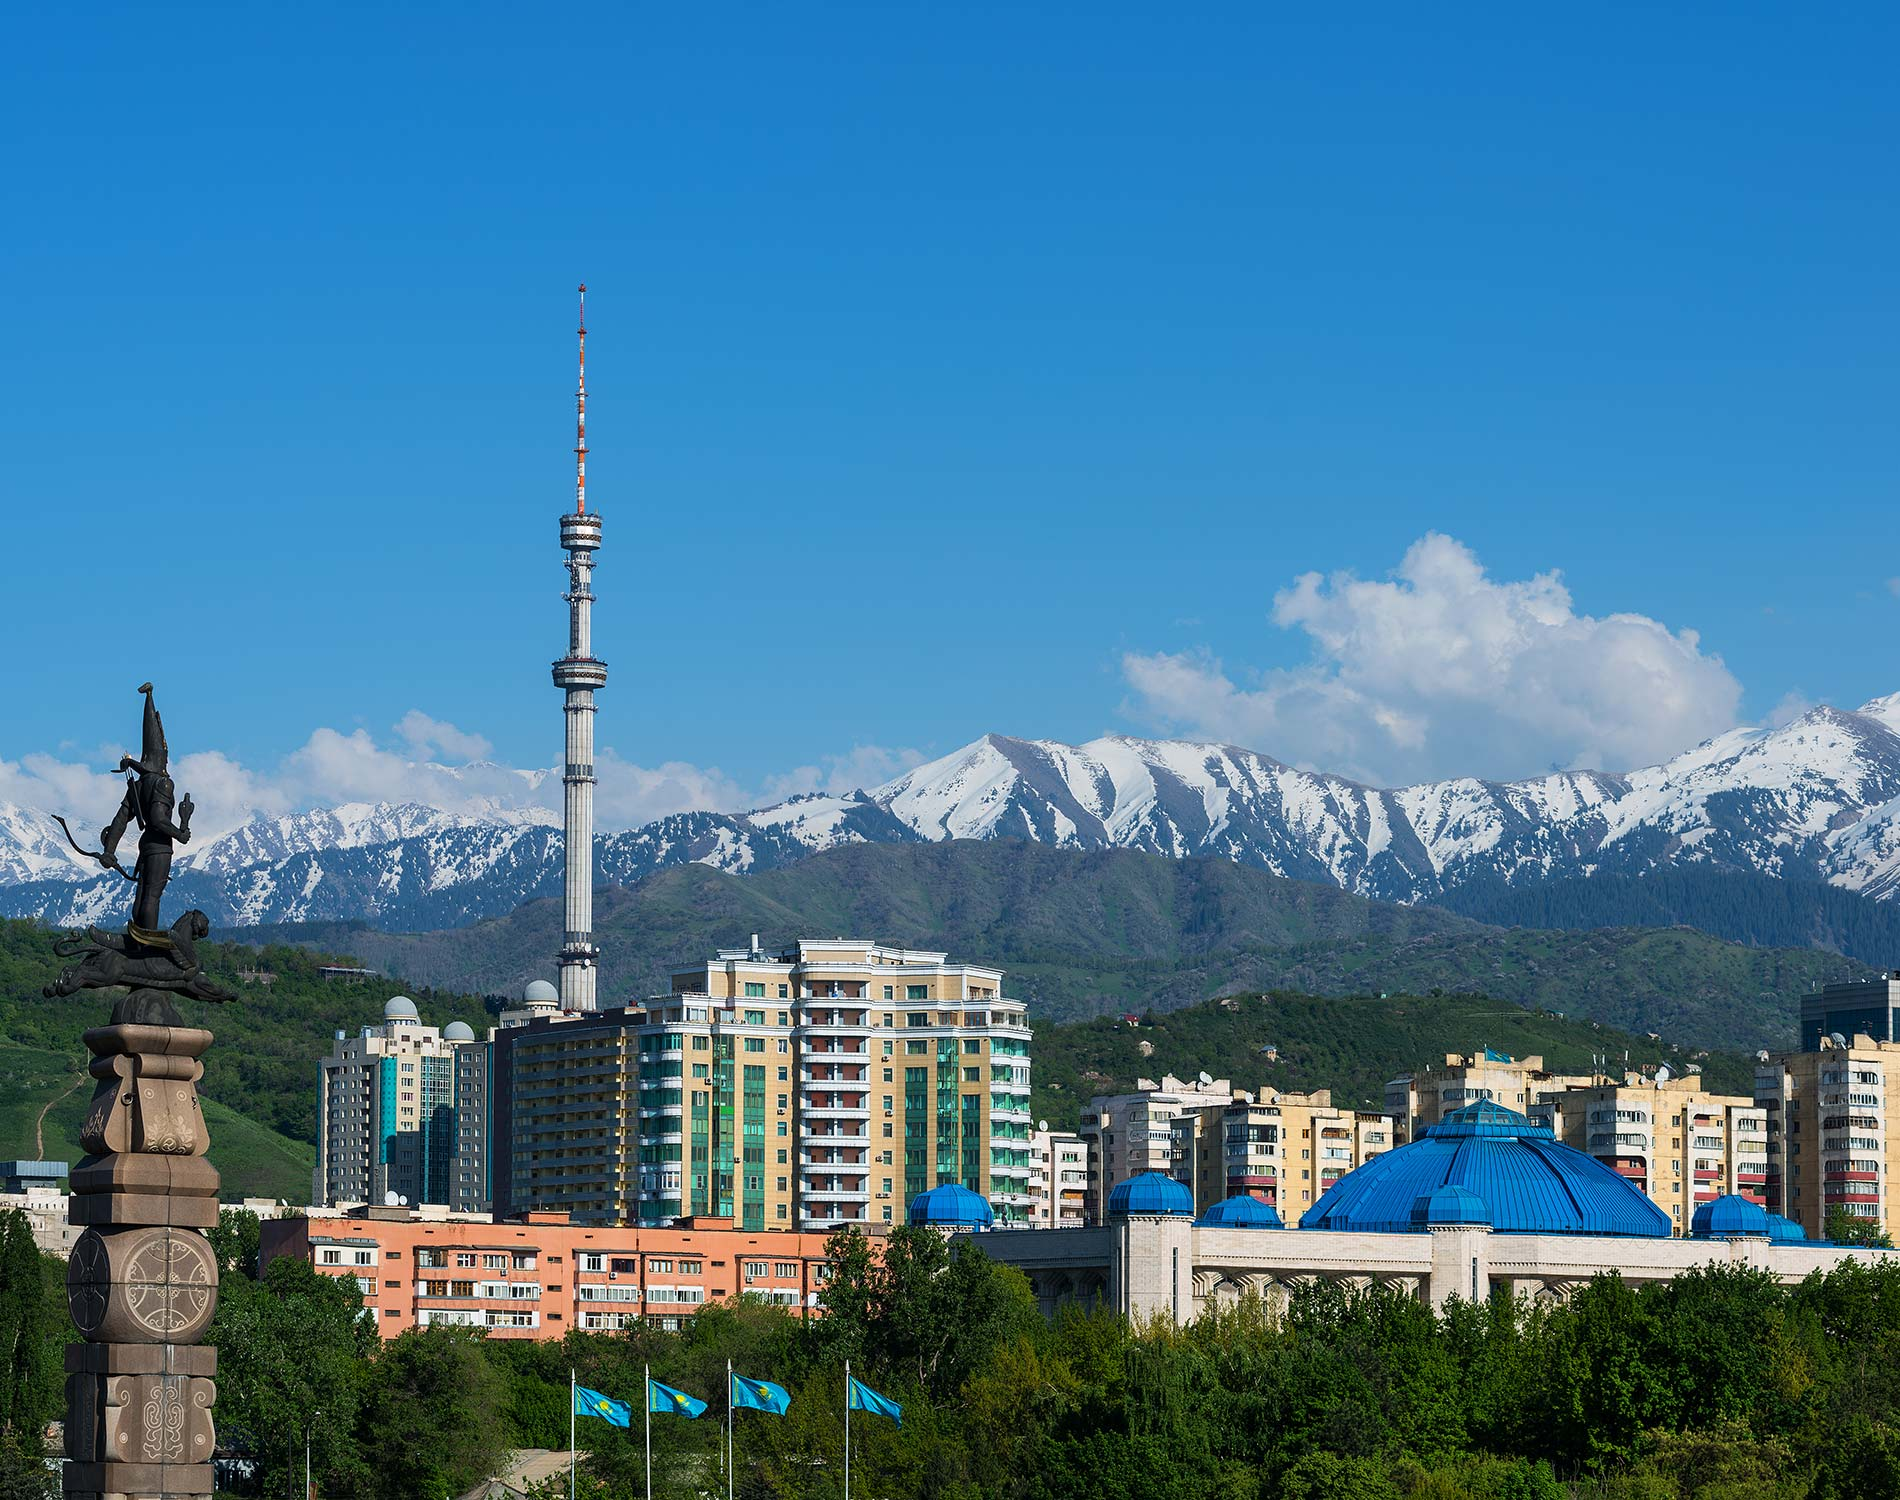 /-/media/images/website/background-images/offices/almaty/1900x1500_kazakhstan_almaty.ashx